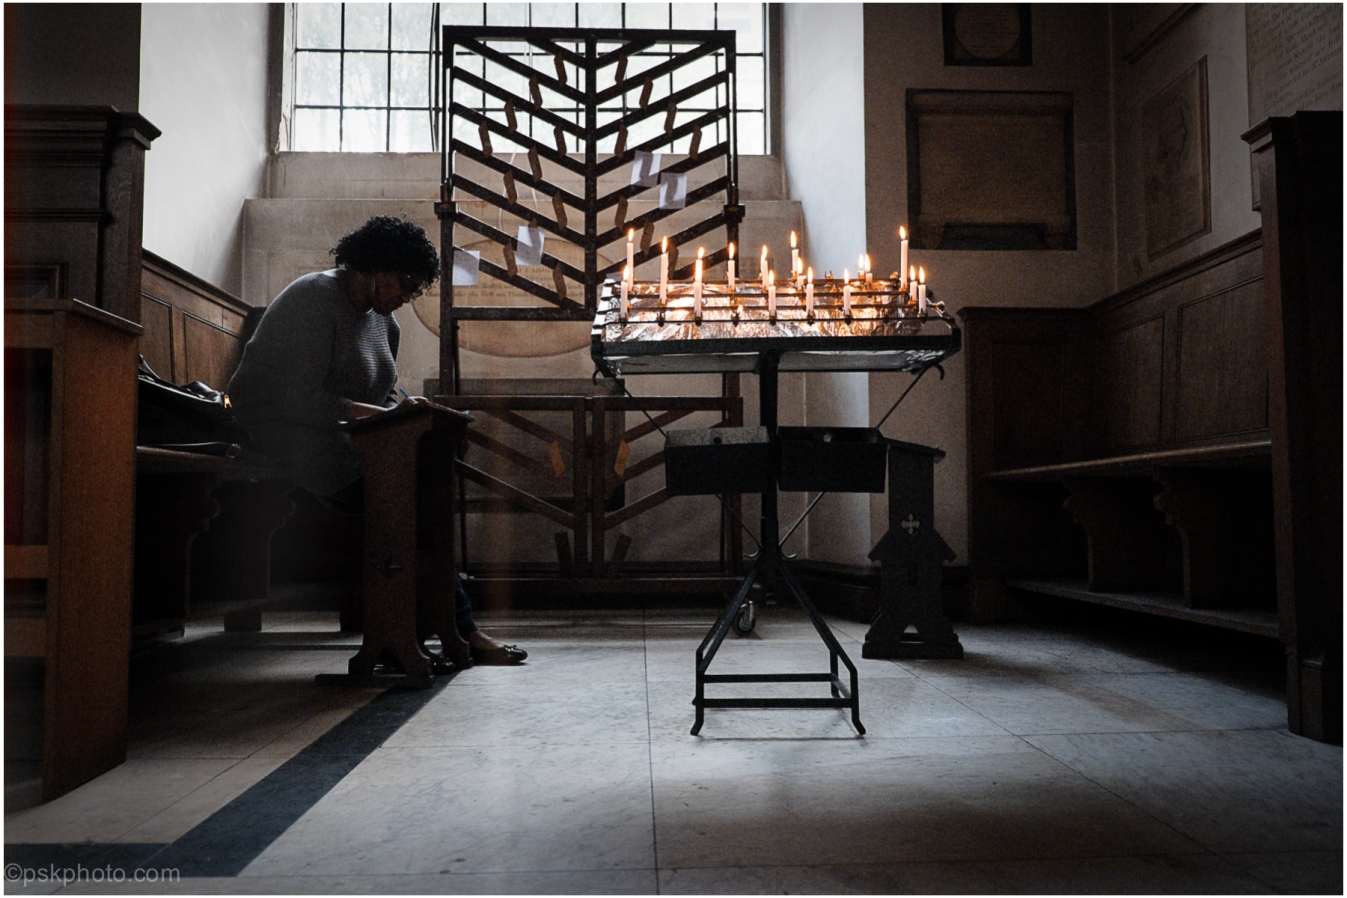 A lady sits quietly writing prayers for her family back in Lagos. She told me that she will clip the prayers onto the board provided and light a candle. St James's Church, Piccadilly, also known as St James's Church, Westminster and as St James-in-the-Fields,